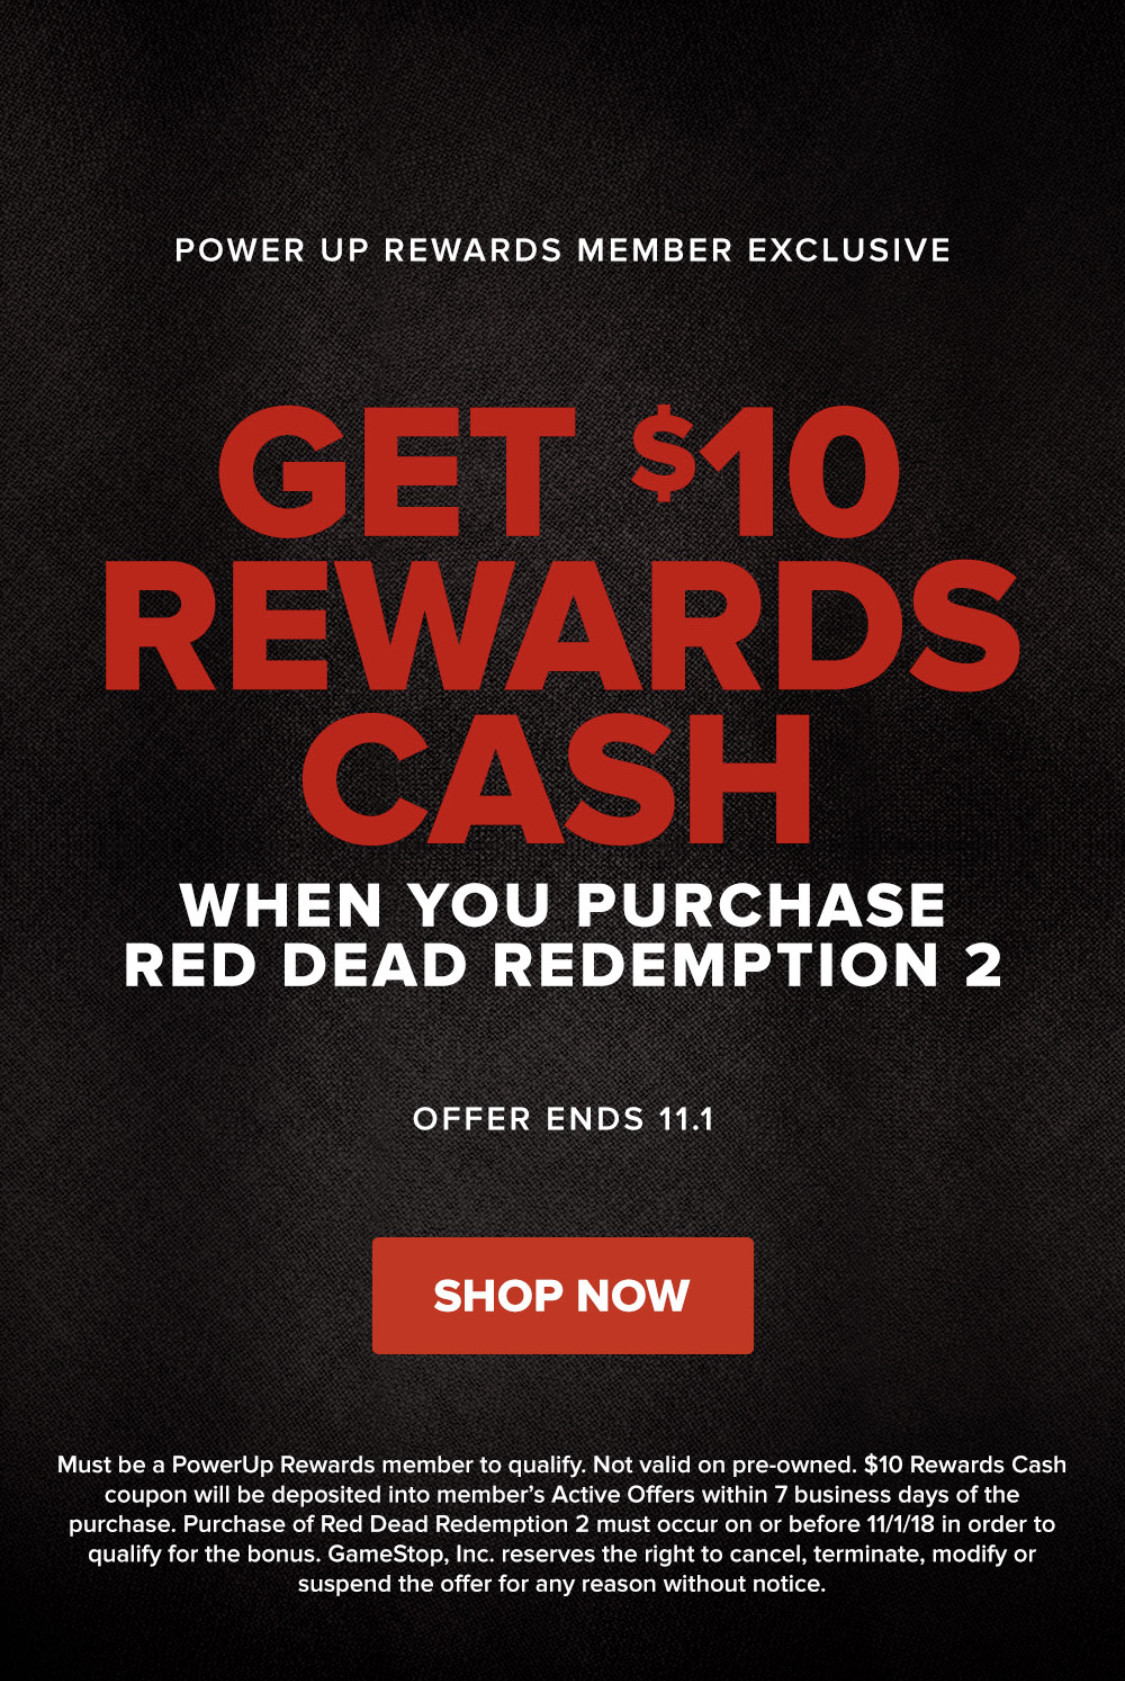 GameStop $10 Rewards Cash with purchase of Red Dead